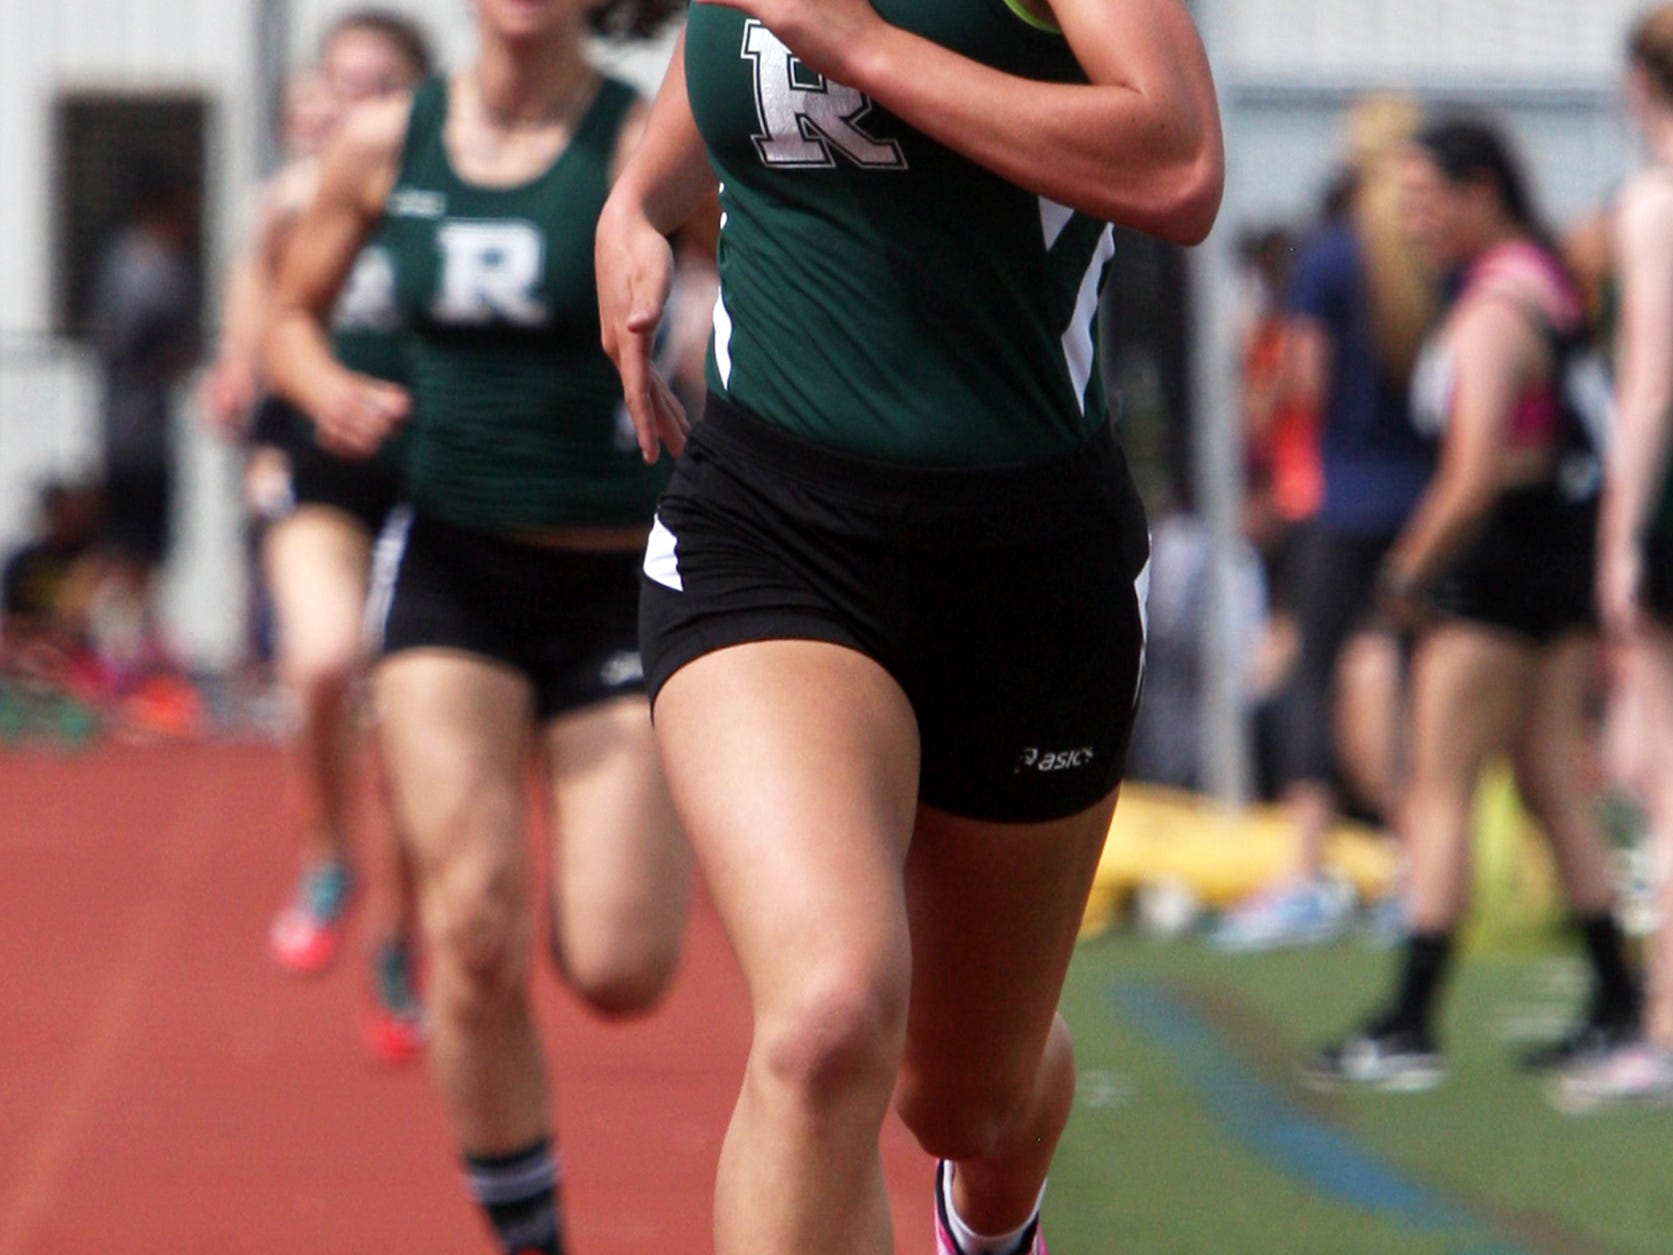 The 2015 Somerset County Track and Field Championships held at Hillsborough High School on Tuesday May 12,2015. Ridge High School's Liz Newman takes the top spot in the girls 1600 meter race.